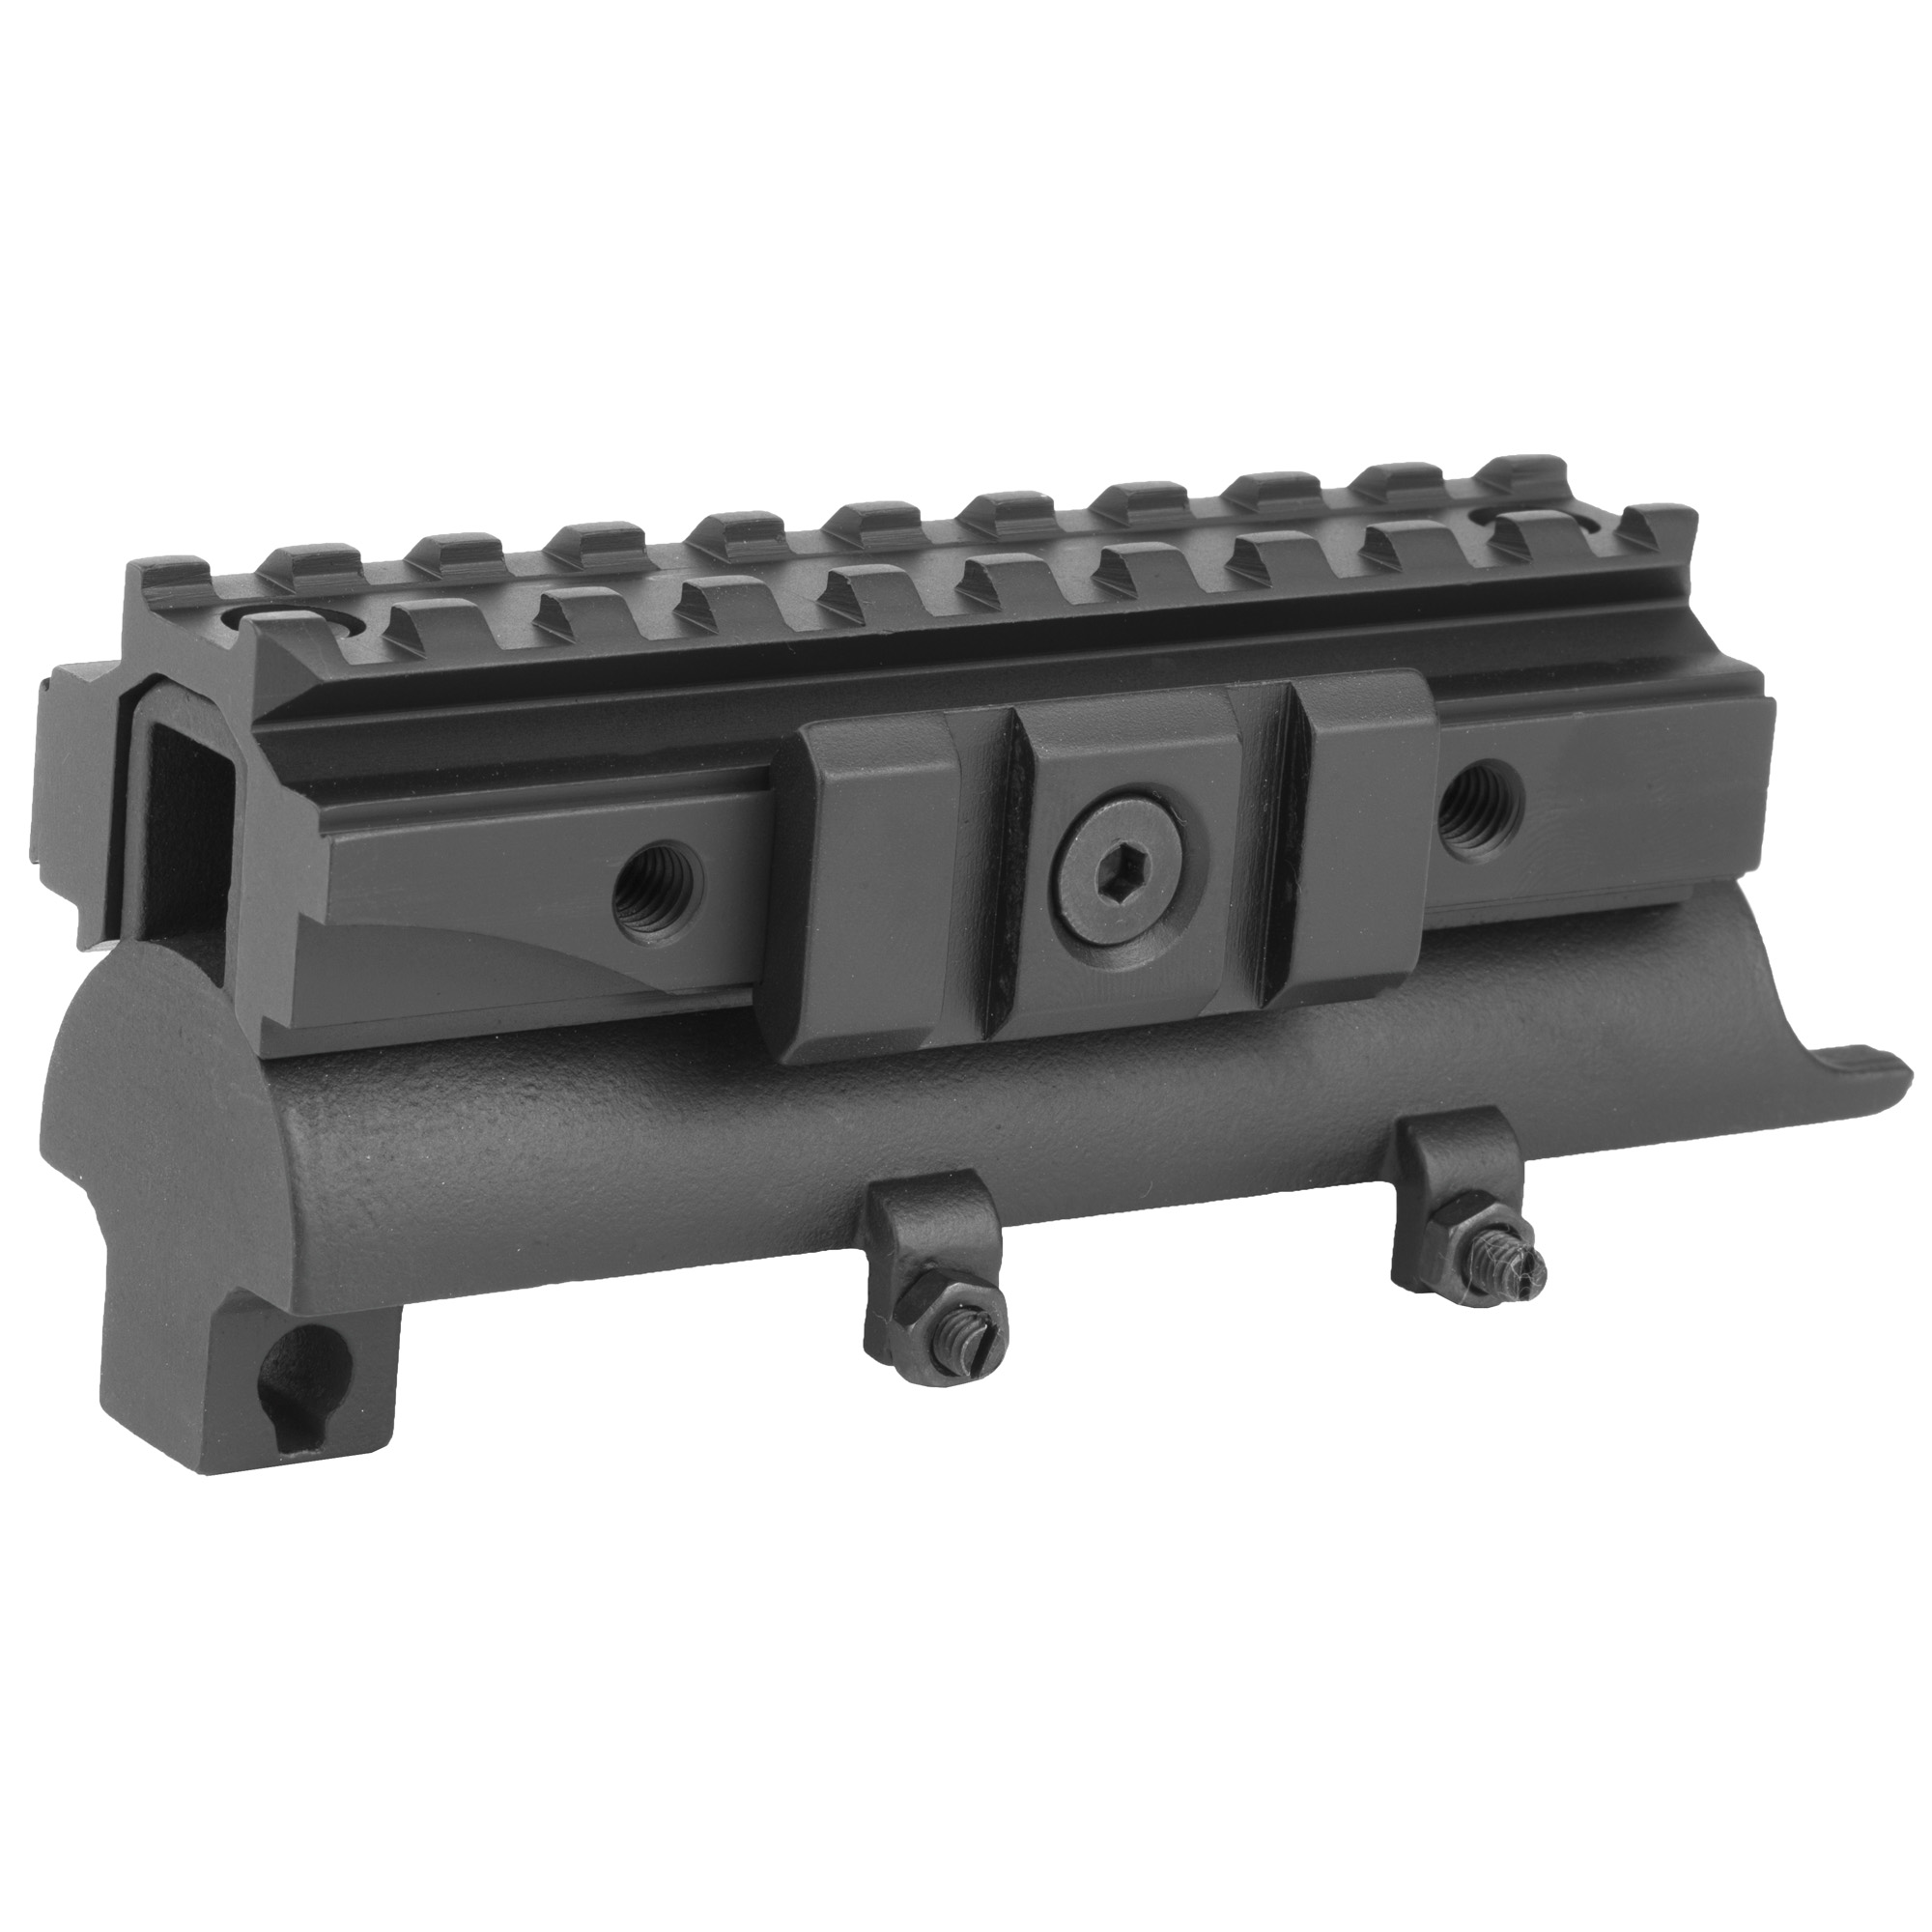 SKS tri-rail receiver cover for mounting optics and accessories.